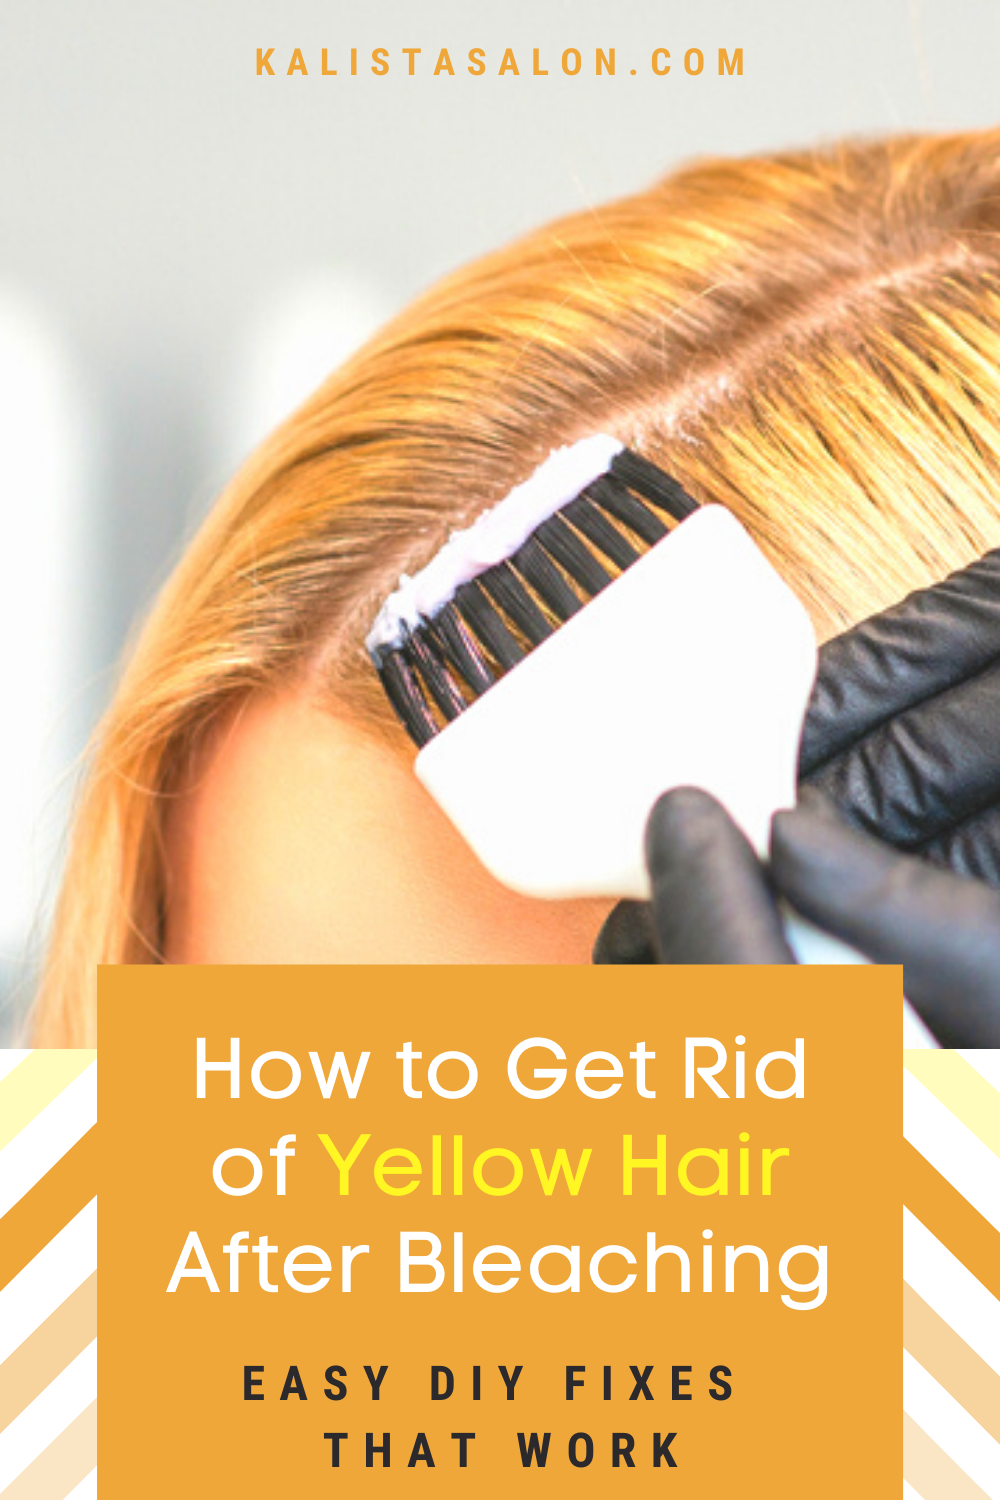 c6595e30da0648bedf38713bfdbd89aa - How To Get Rid Of Yellow Hair After Bleaching